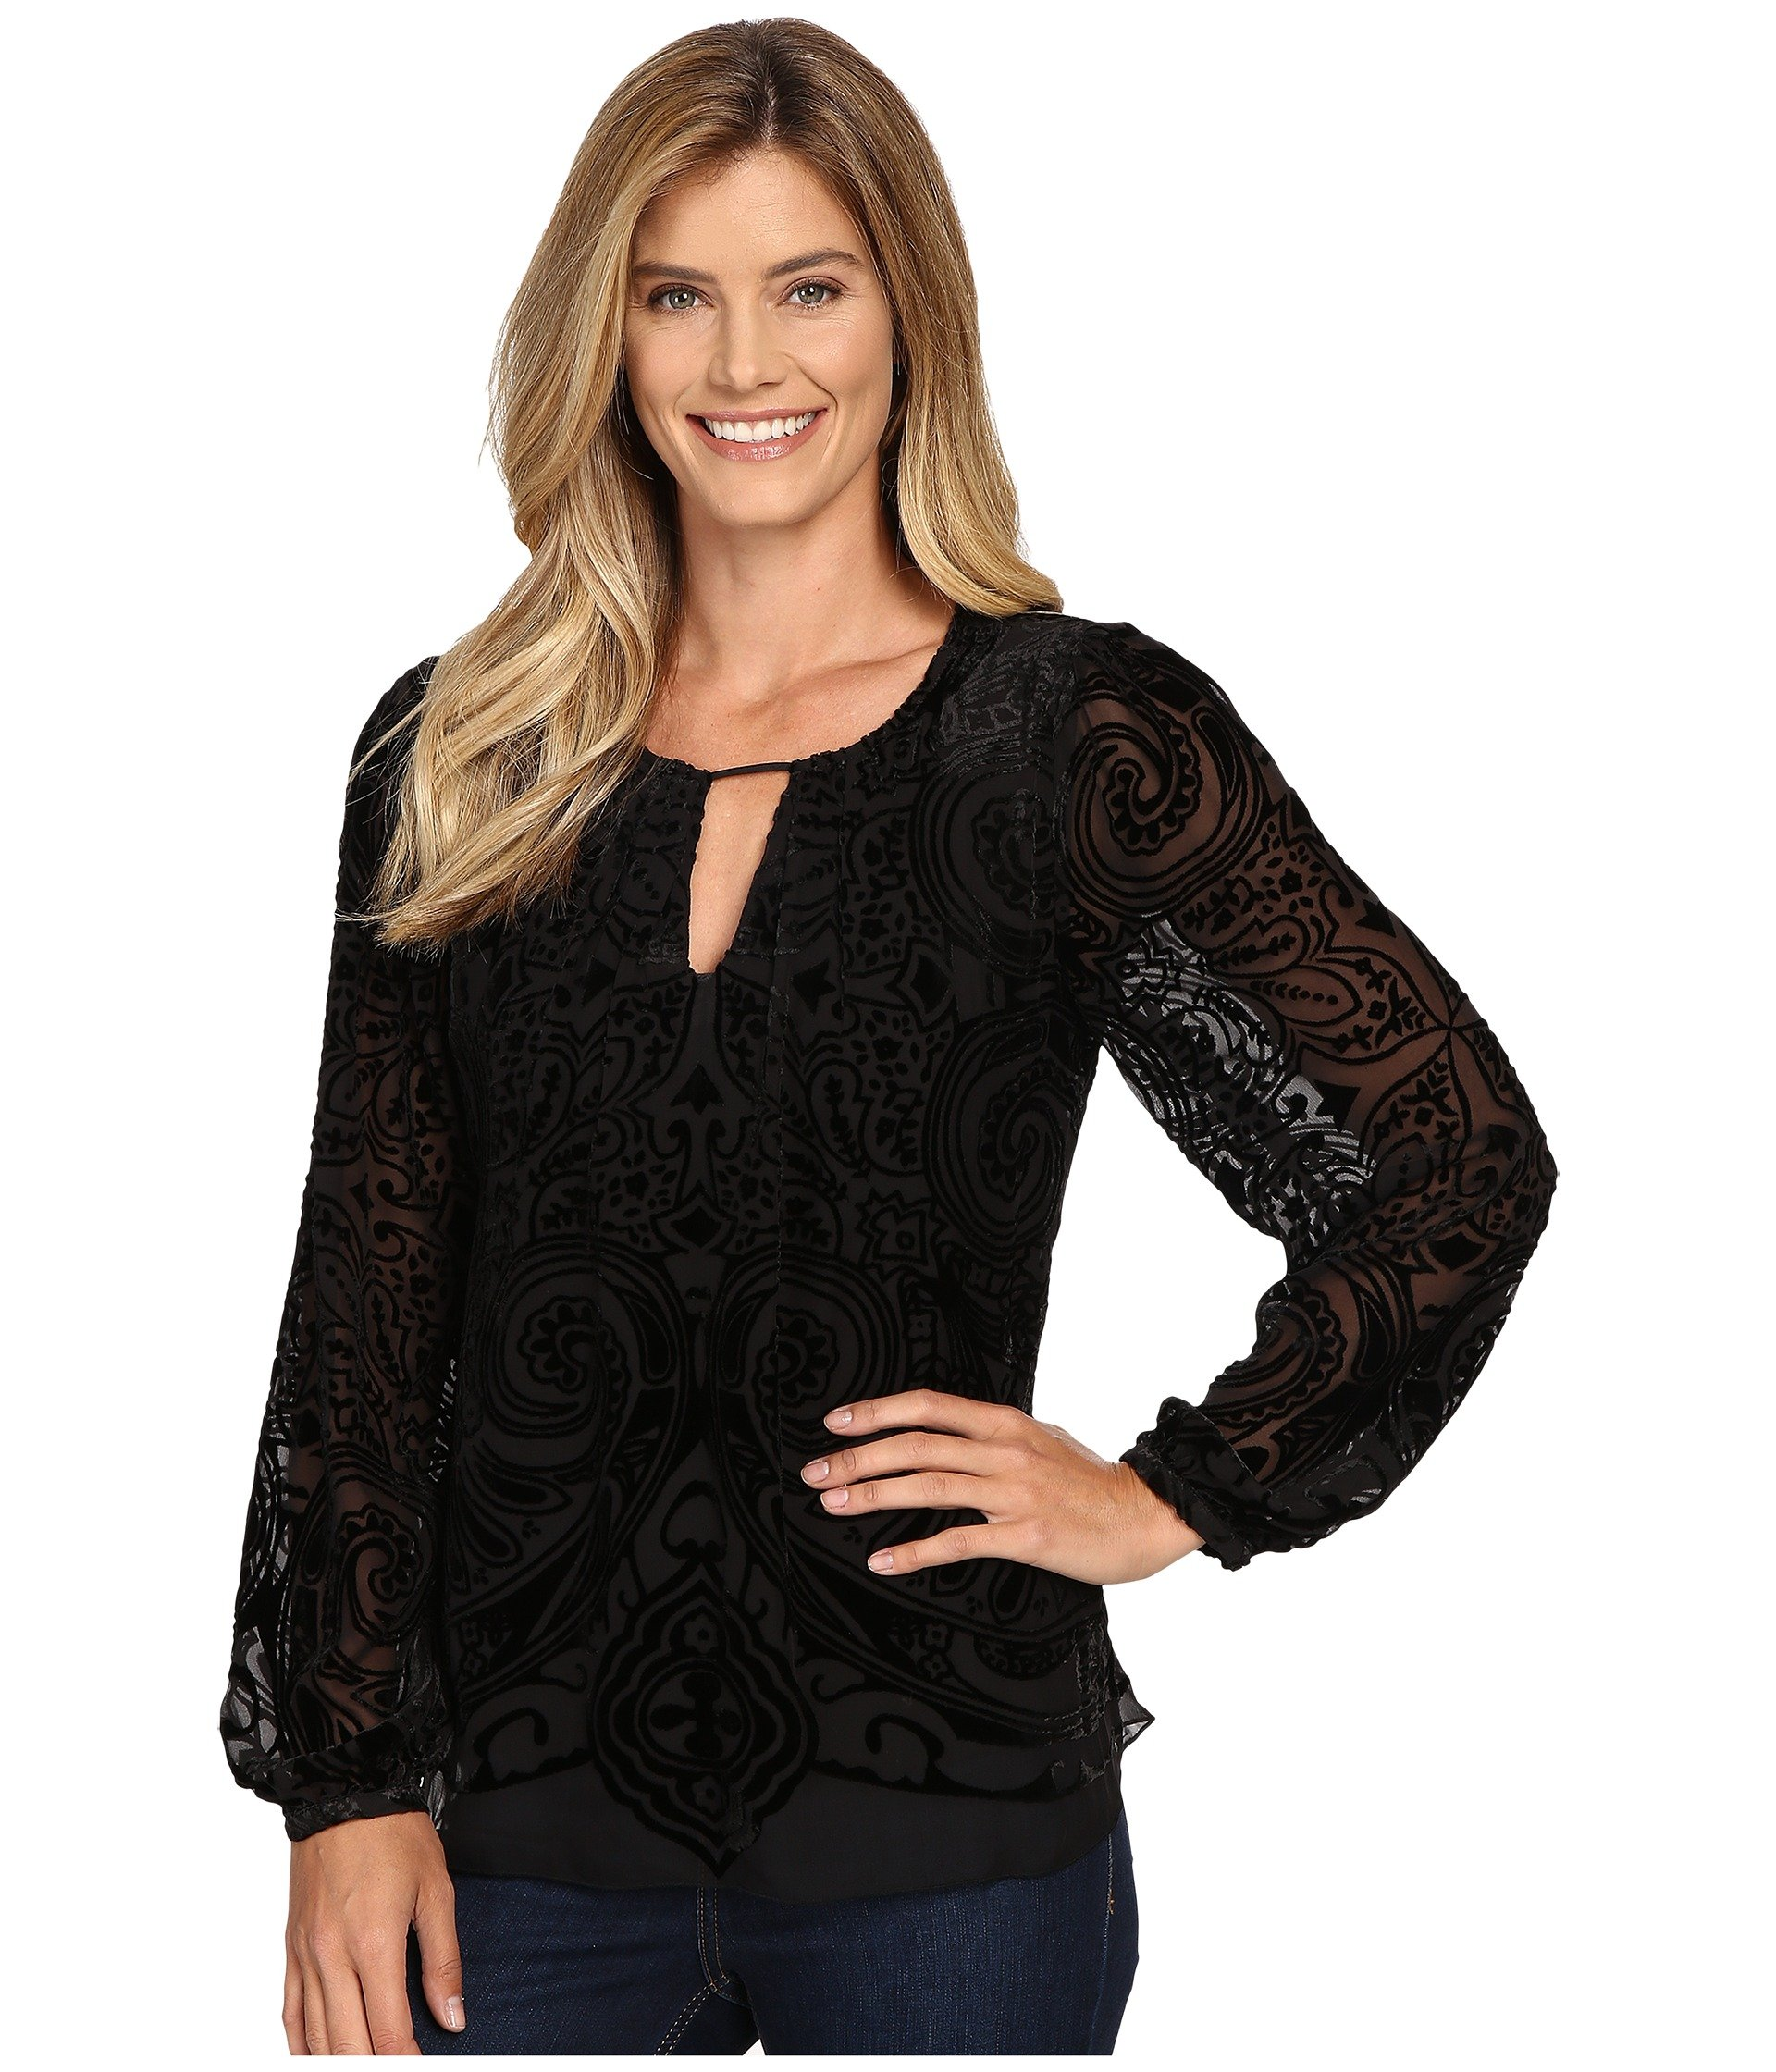 Hale Bob Women's Throughout The Looking Glass Top Black Shirt